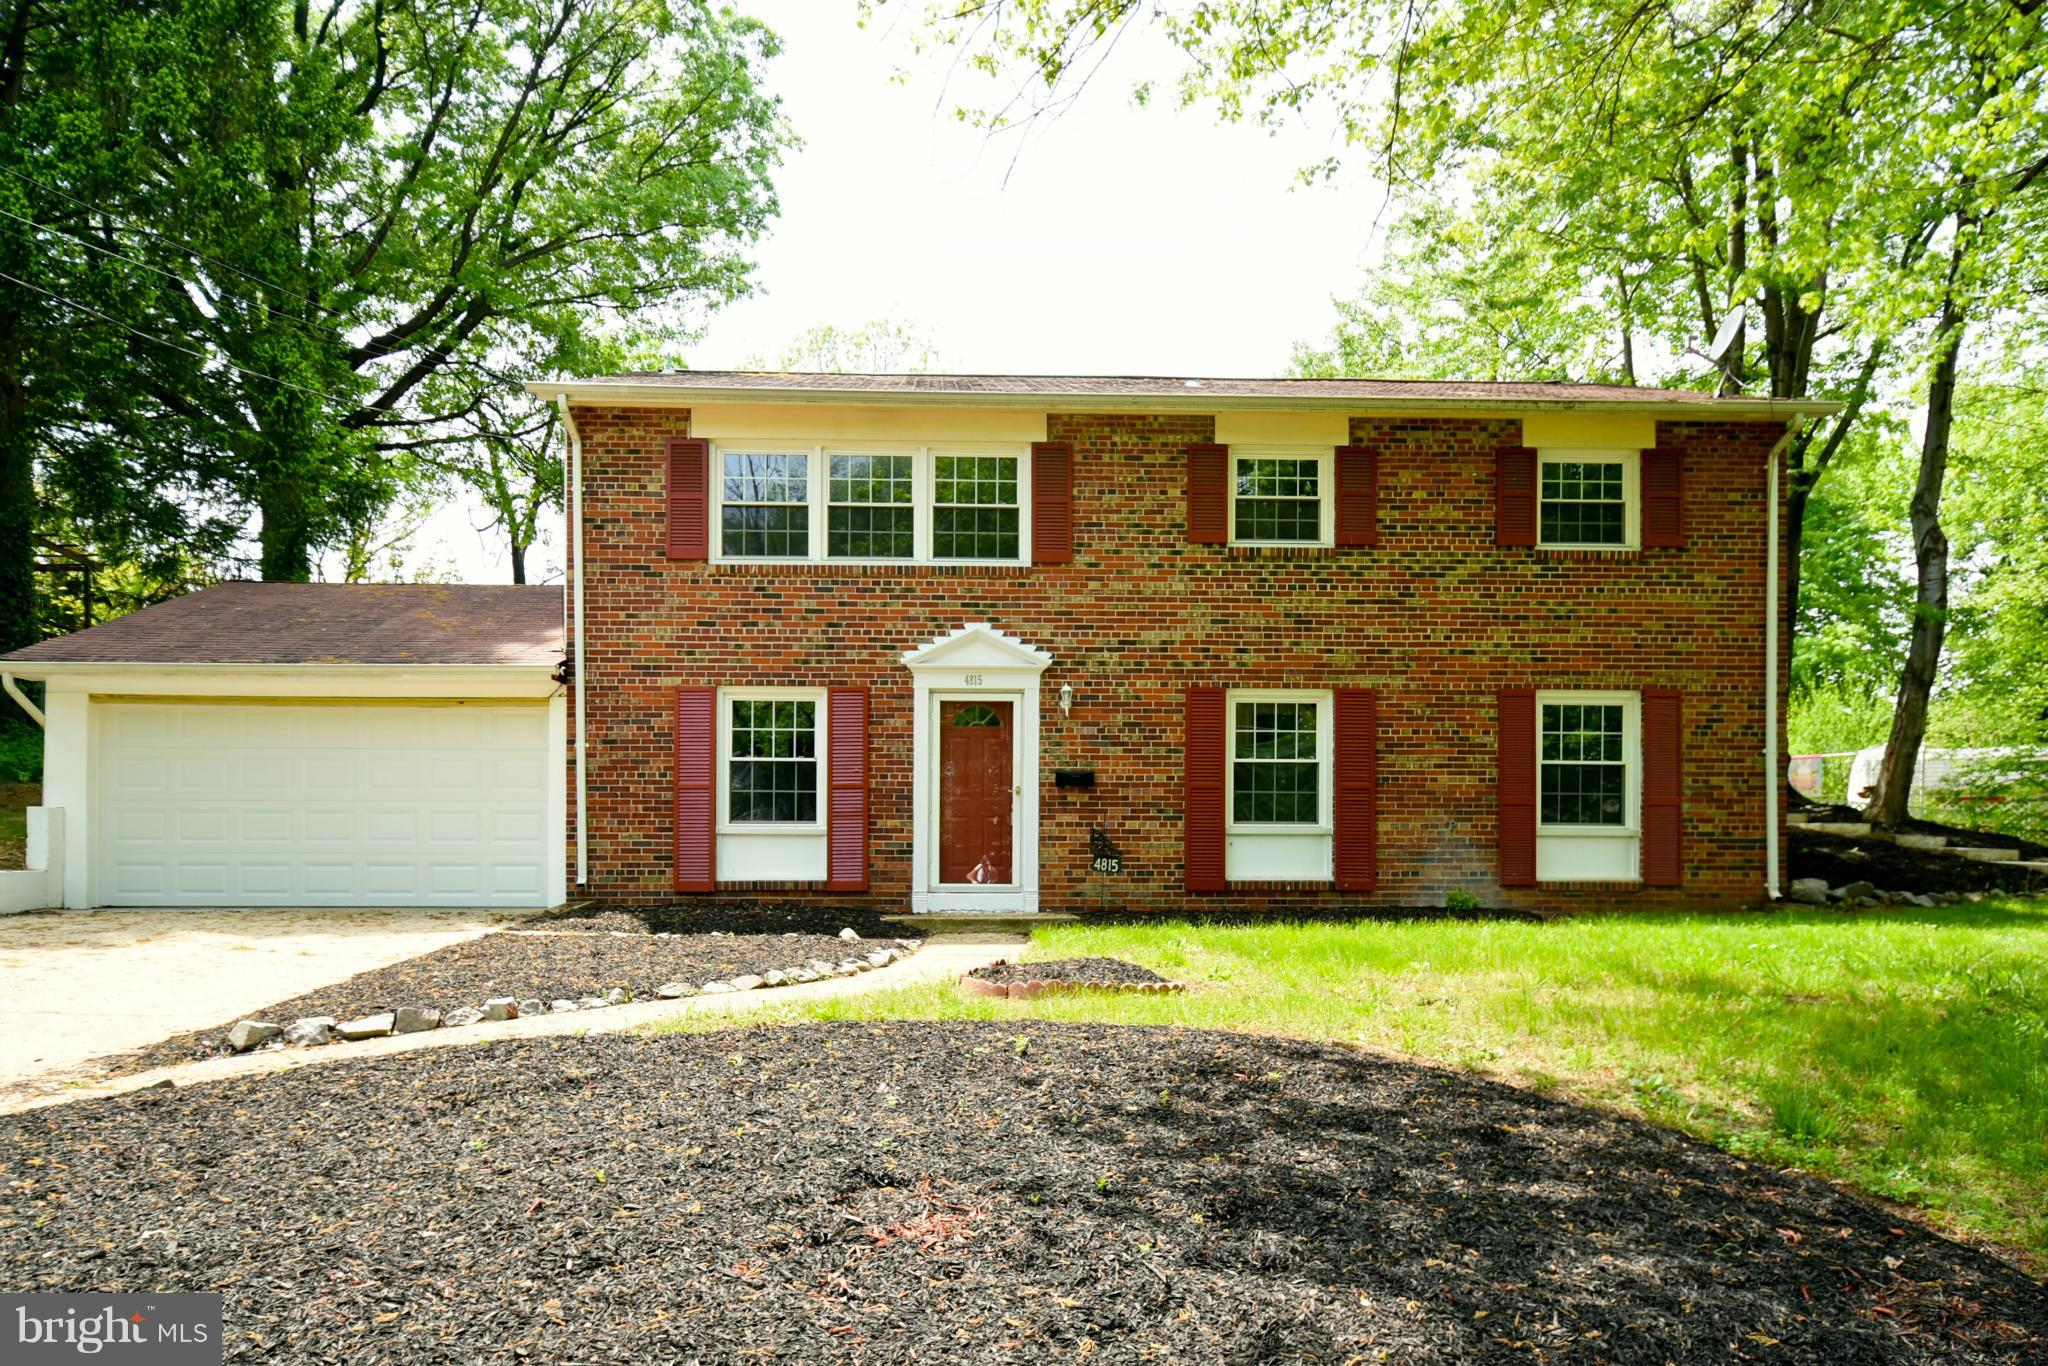 A Must See !!! Conveniently located off Franconia. Large front & back yard W/ Patio. Minutes from 395 / 495 / 95 & RT-1, Old Town, Springfield Mall, National Harbor, Kingstown. 3 Metro's- Springfield, Huntington & Van Dorn >20 min walk. Renovated 3 Full Bath, Kitchen, Granite, Carpet, Paint, L/ Fixtures, SS Appliances, Flooring, Sliding Door, Garage Door, Landscape, Newer Windows-5. Dont Miss!